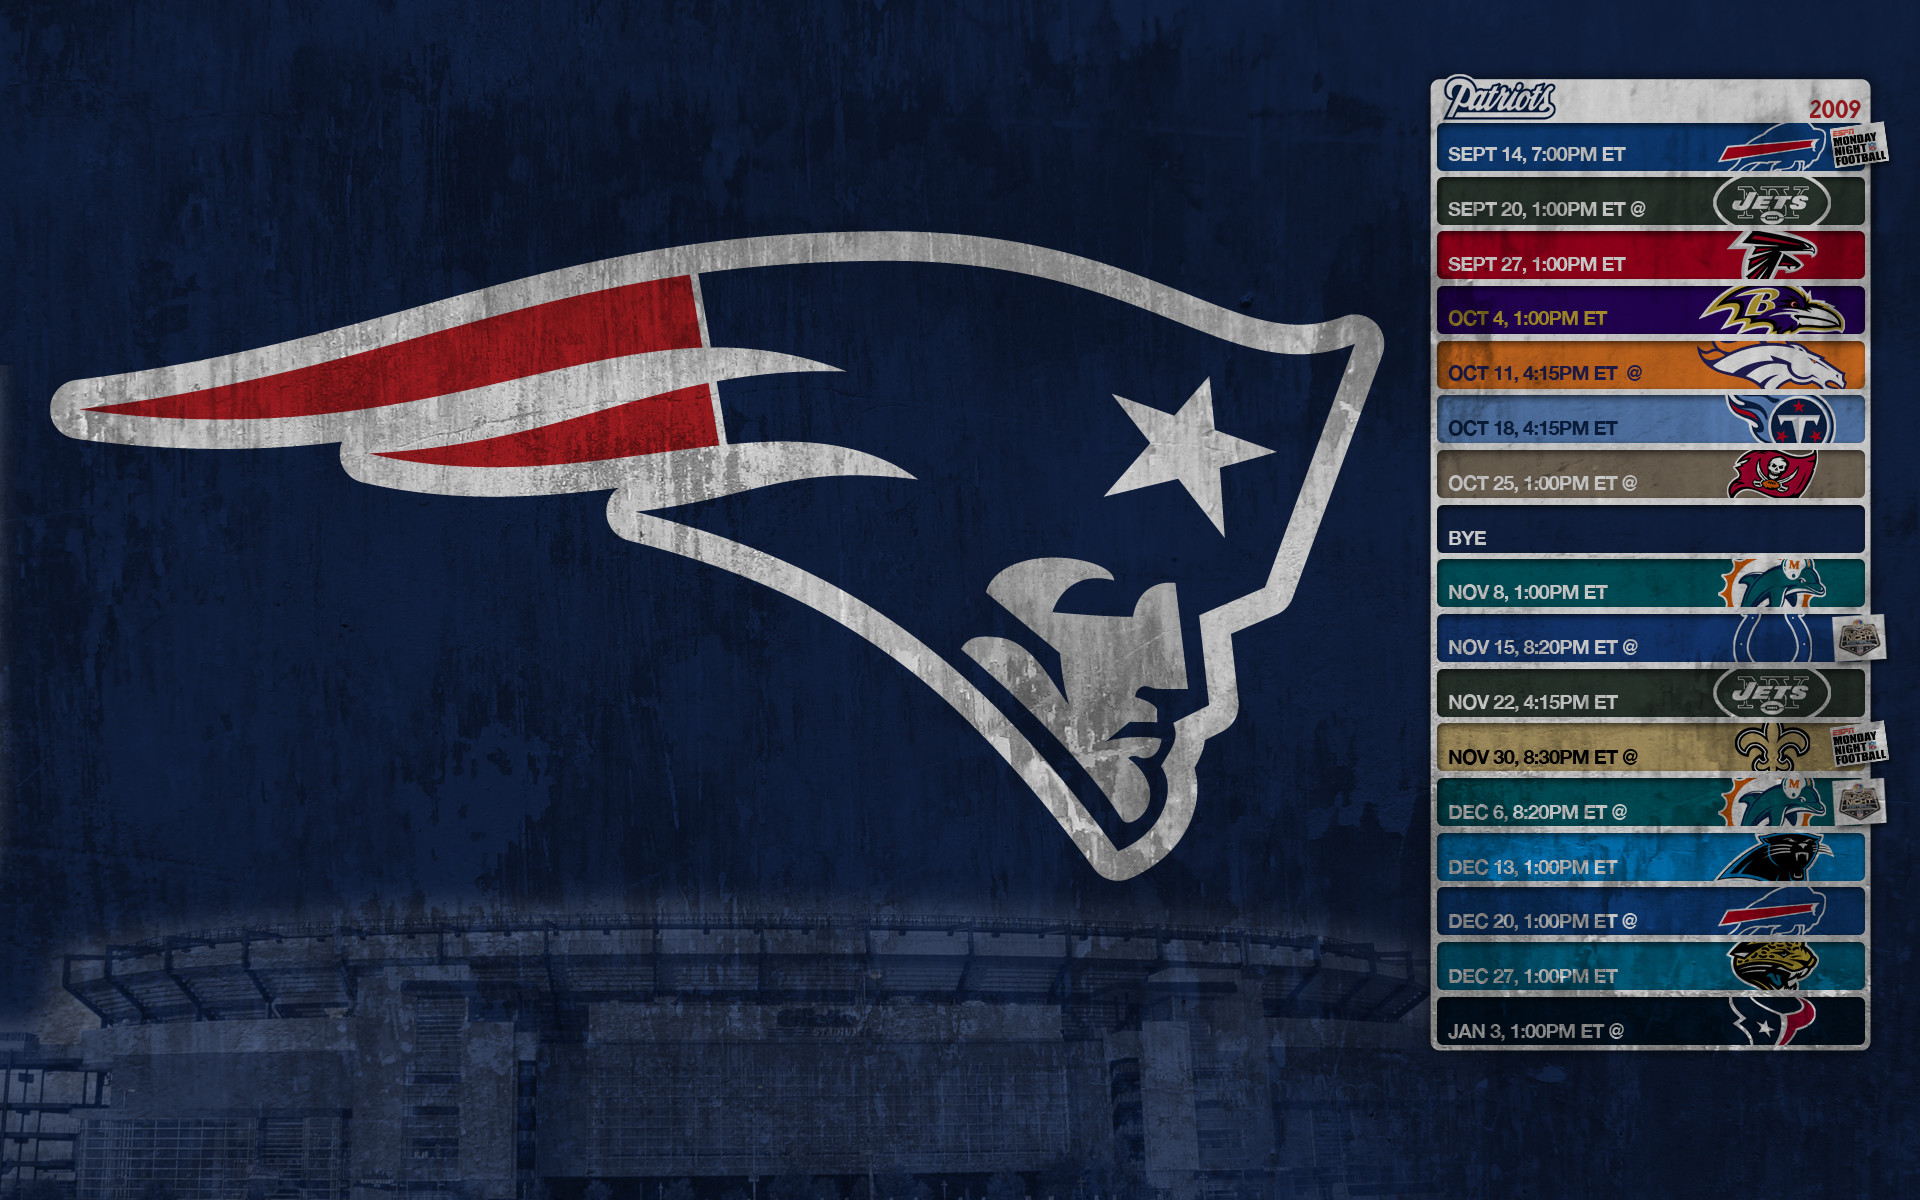 background, screensaver, wallpaper, patriots, connect, images .